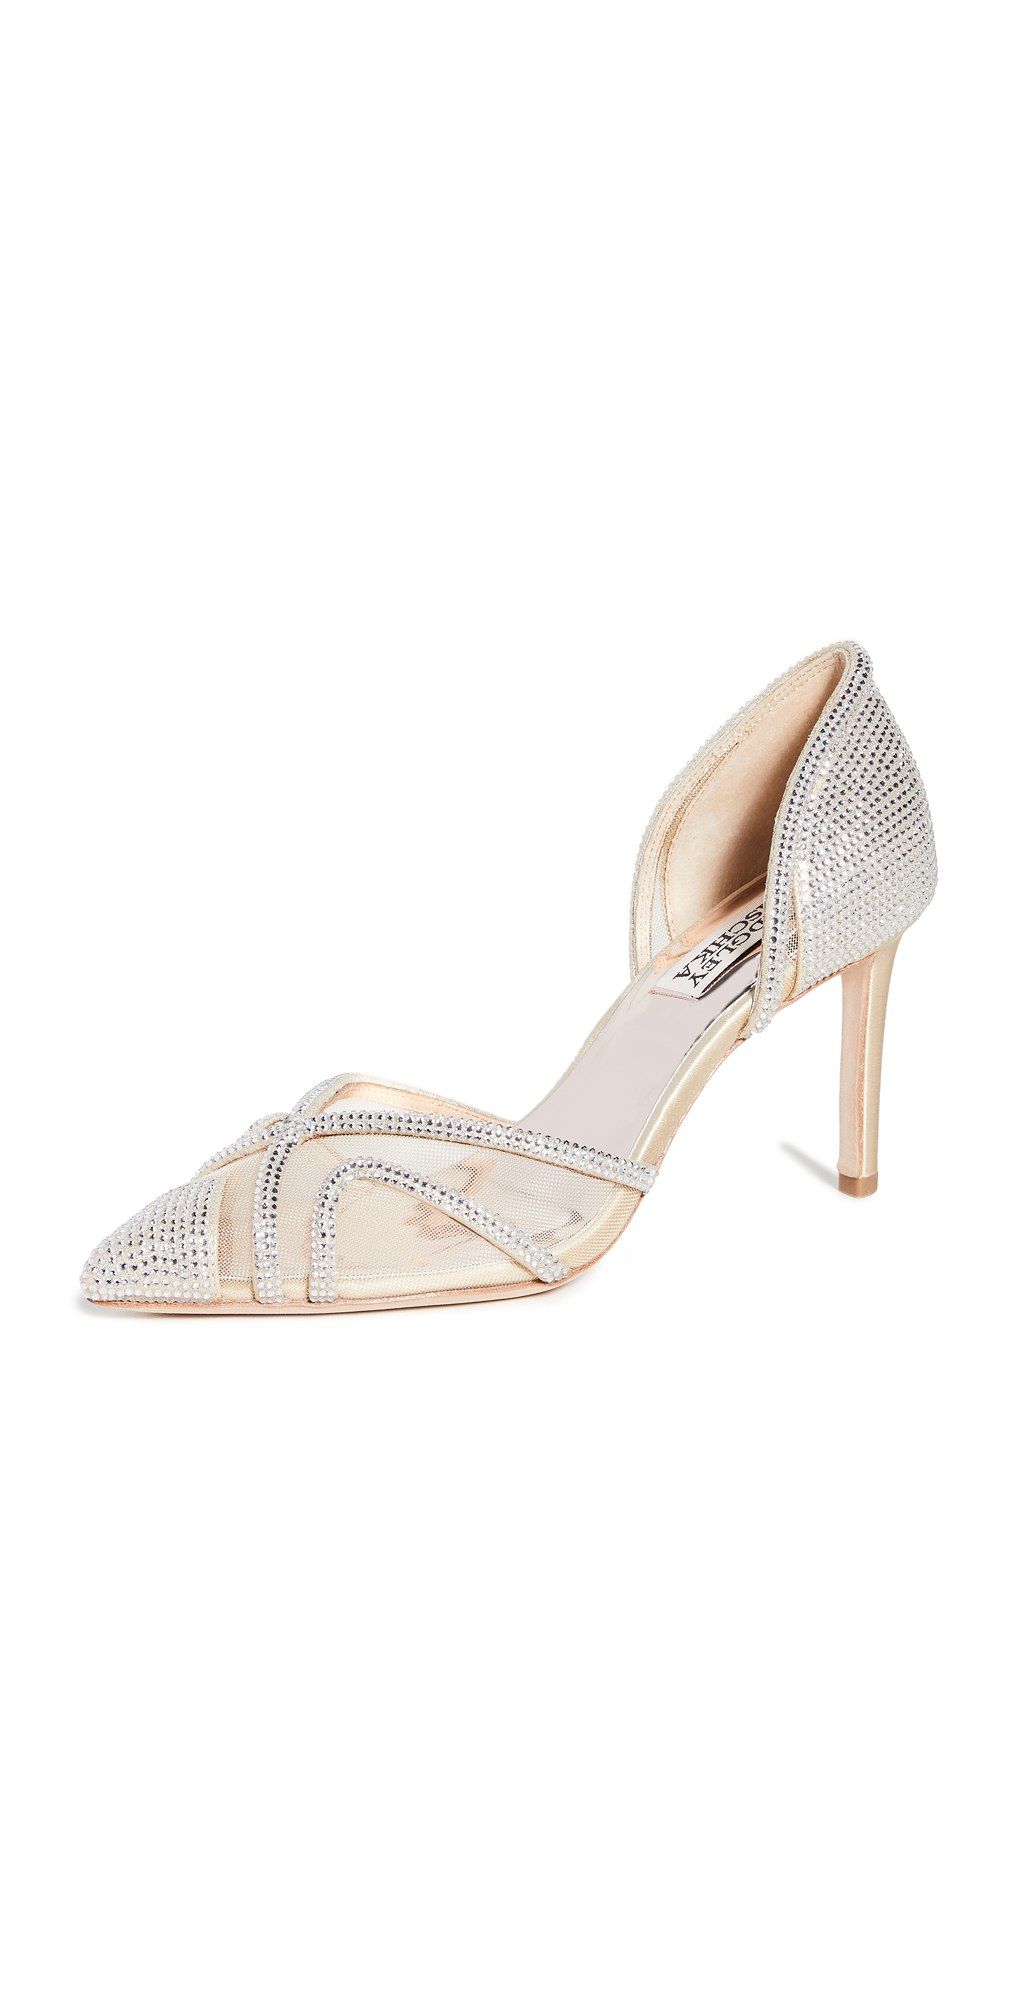 Badgley Mischka Haze Point Toe Pumps